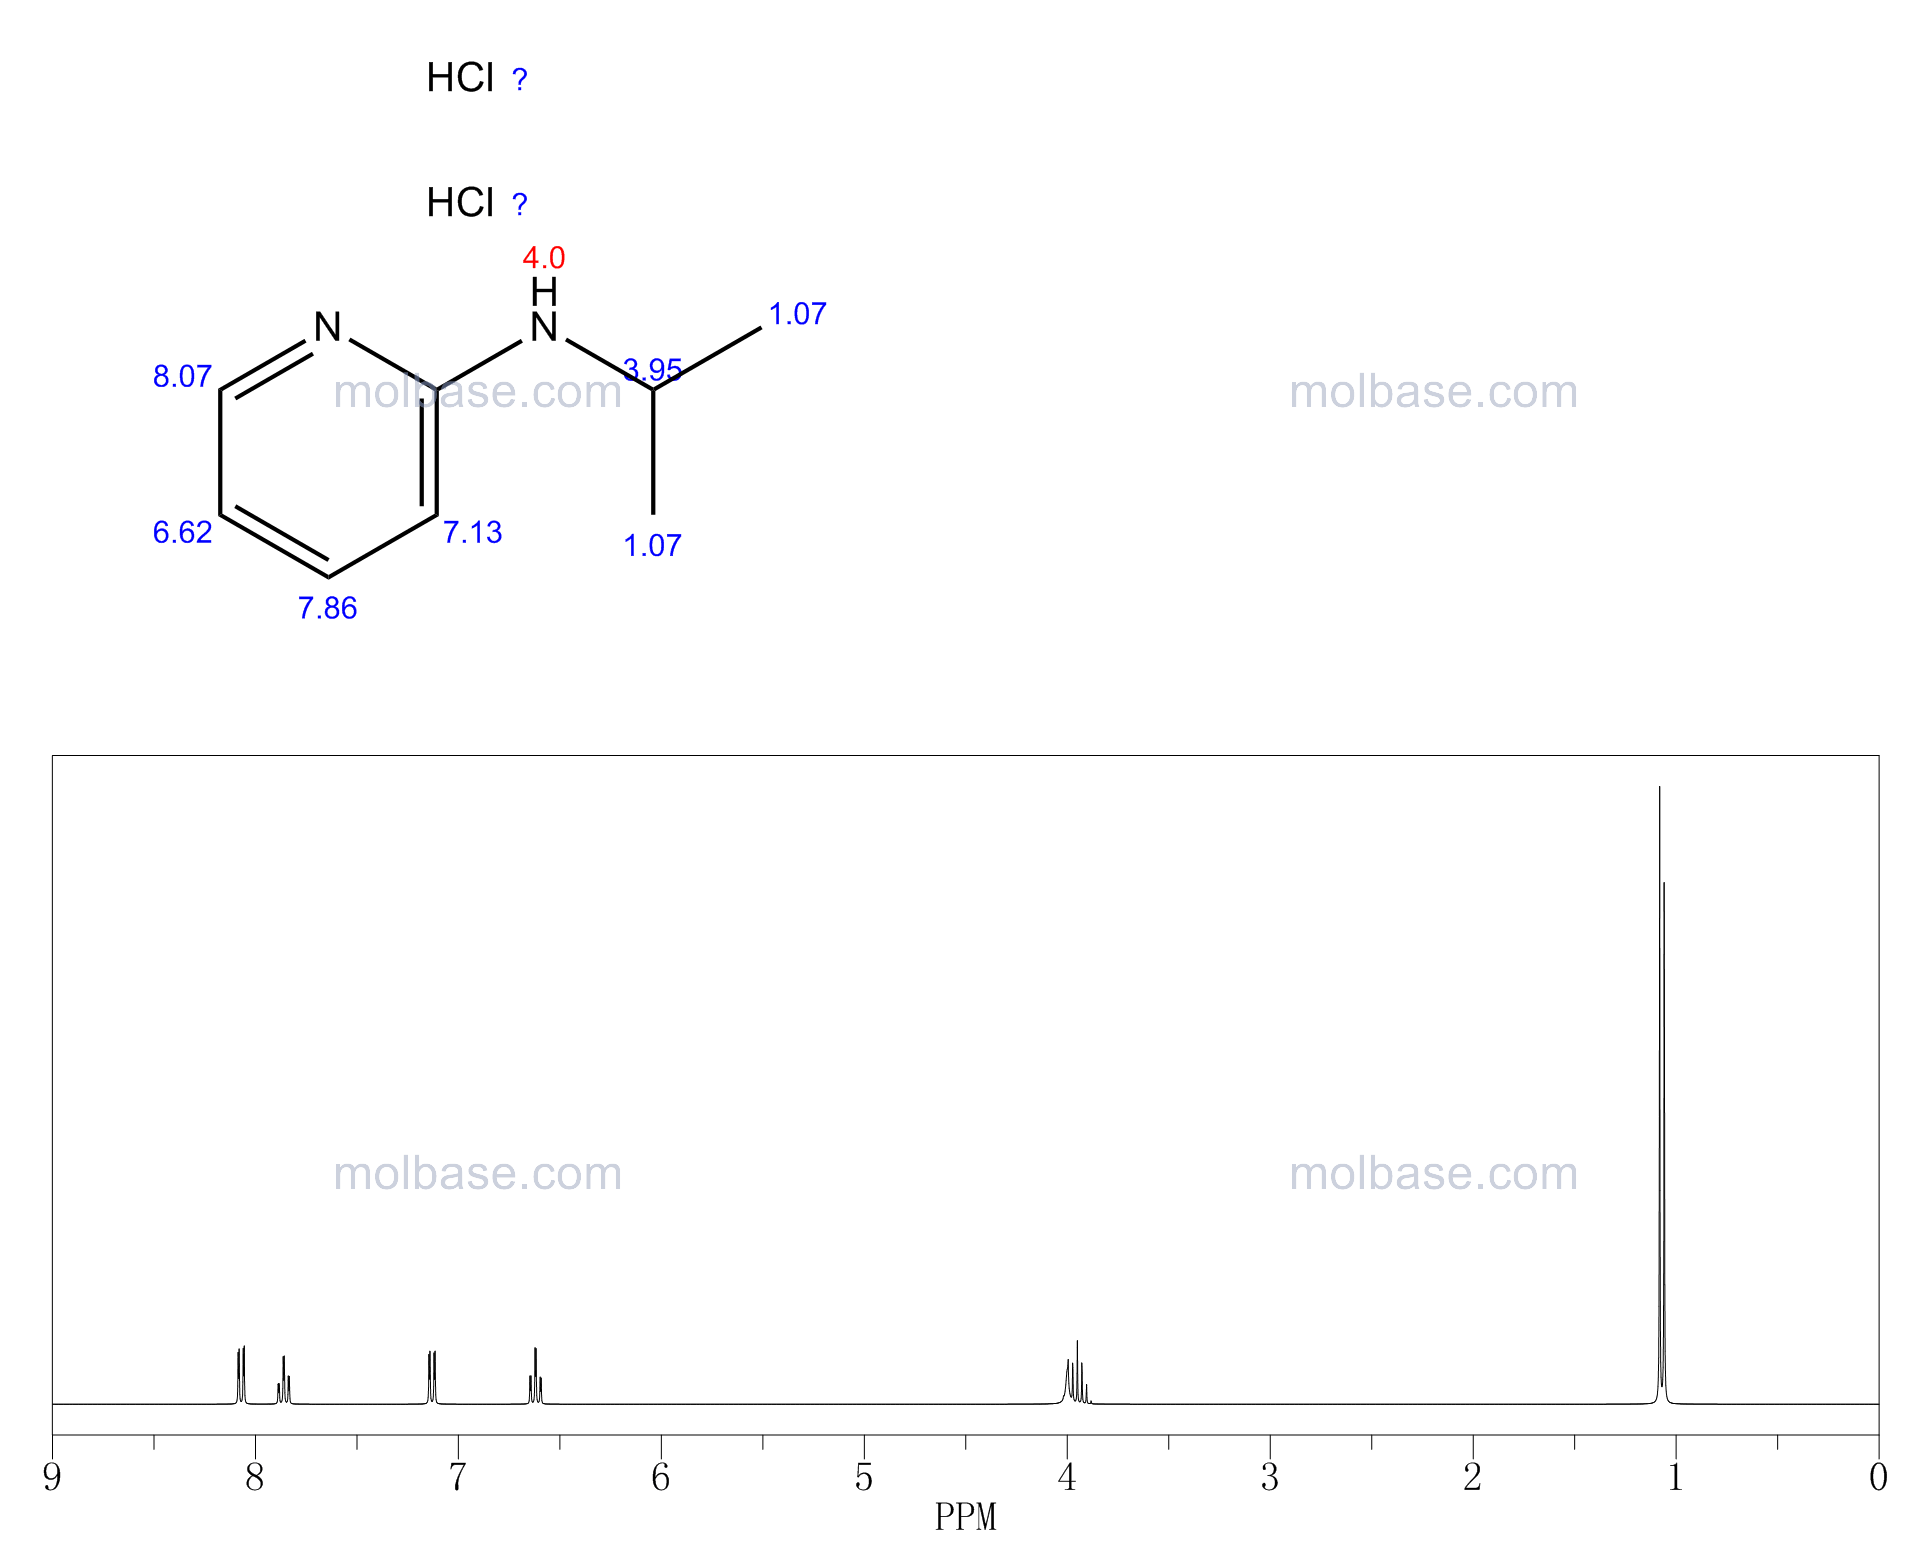 ISOPROPYL-PYRIDIN-2-YL-AMINE DIHYDROCHLORIDE NMR spectra analysis, Chemical CAS NO. 15513-18-5 NMR spectral analysis, ISOPROPYL-PYRIDIN-2-YL-AMINE DIHYDROCHLORIDE C-NMR spectrum